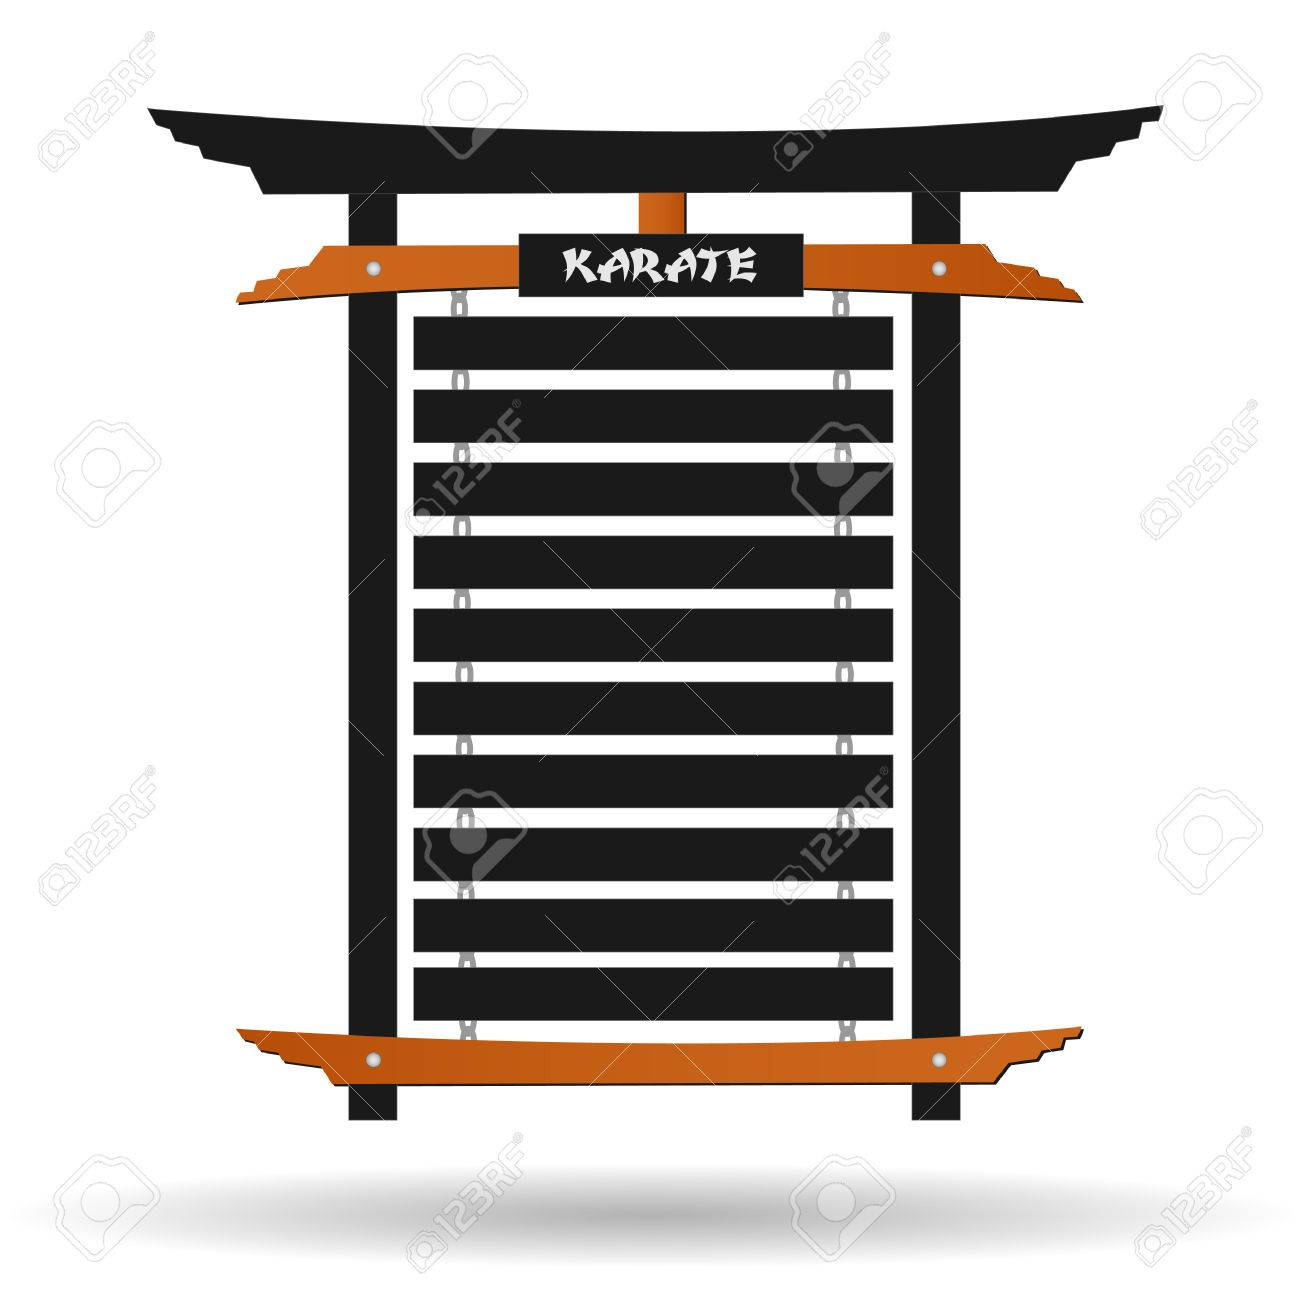 image of a karate belt rack isolated on a white background royalty free cliparts vectors and stock illustration image 26168754